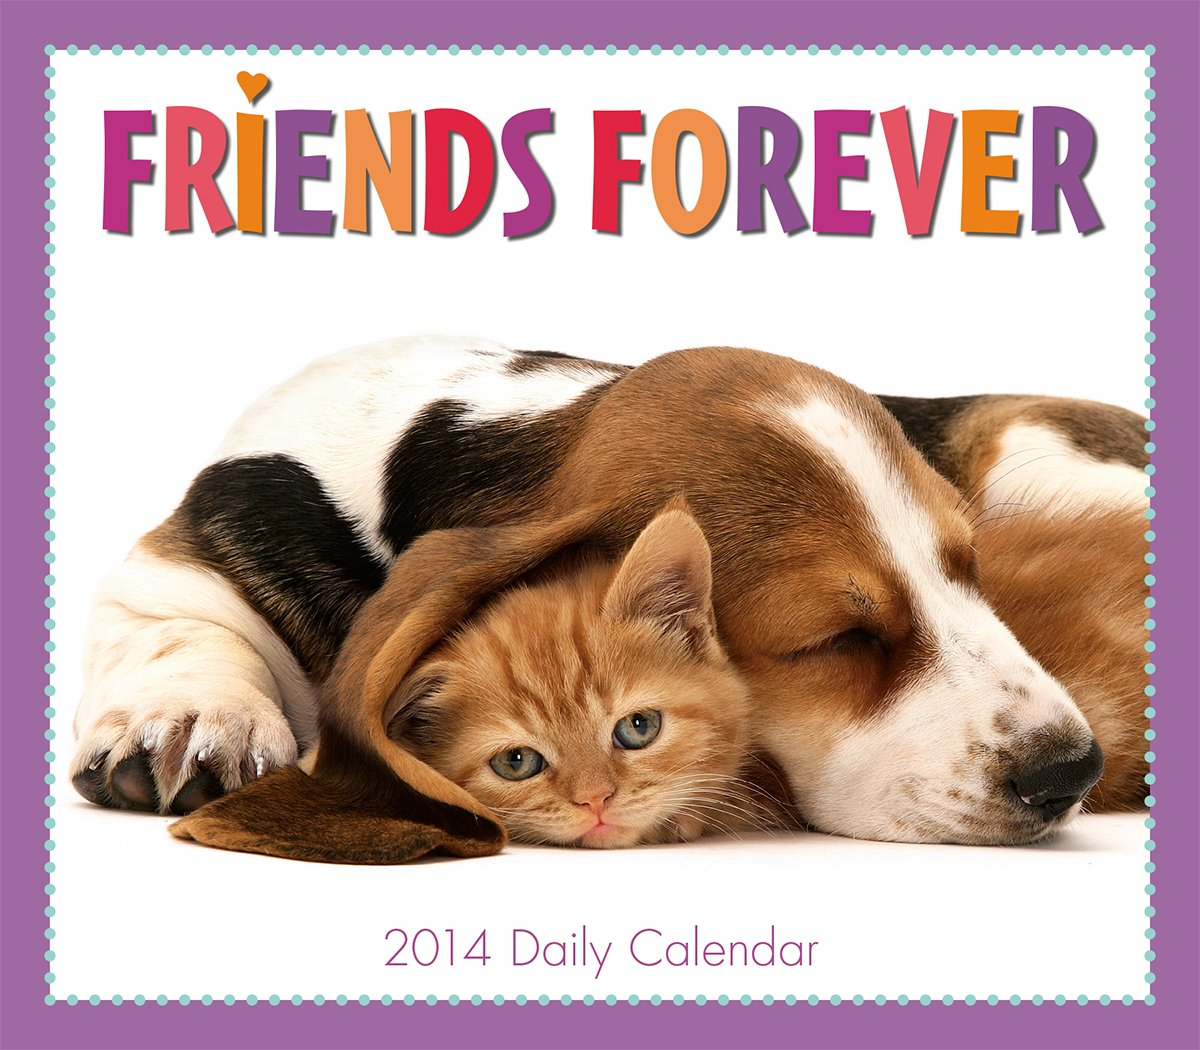 Friends Forever 2014 Boxed/Daily (calendar)